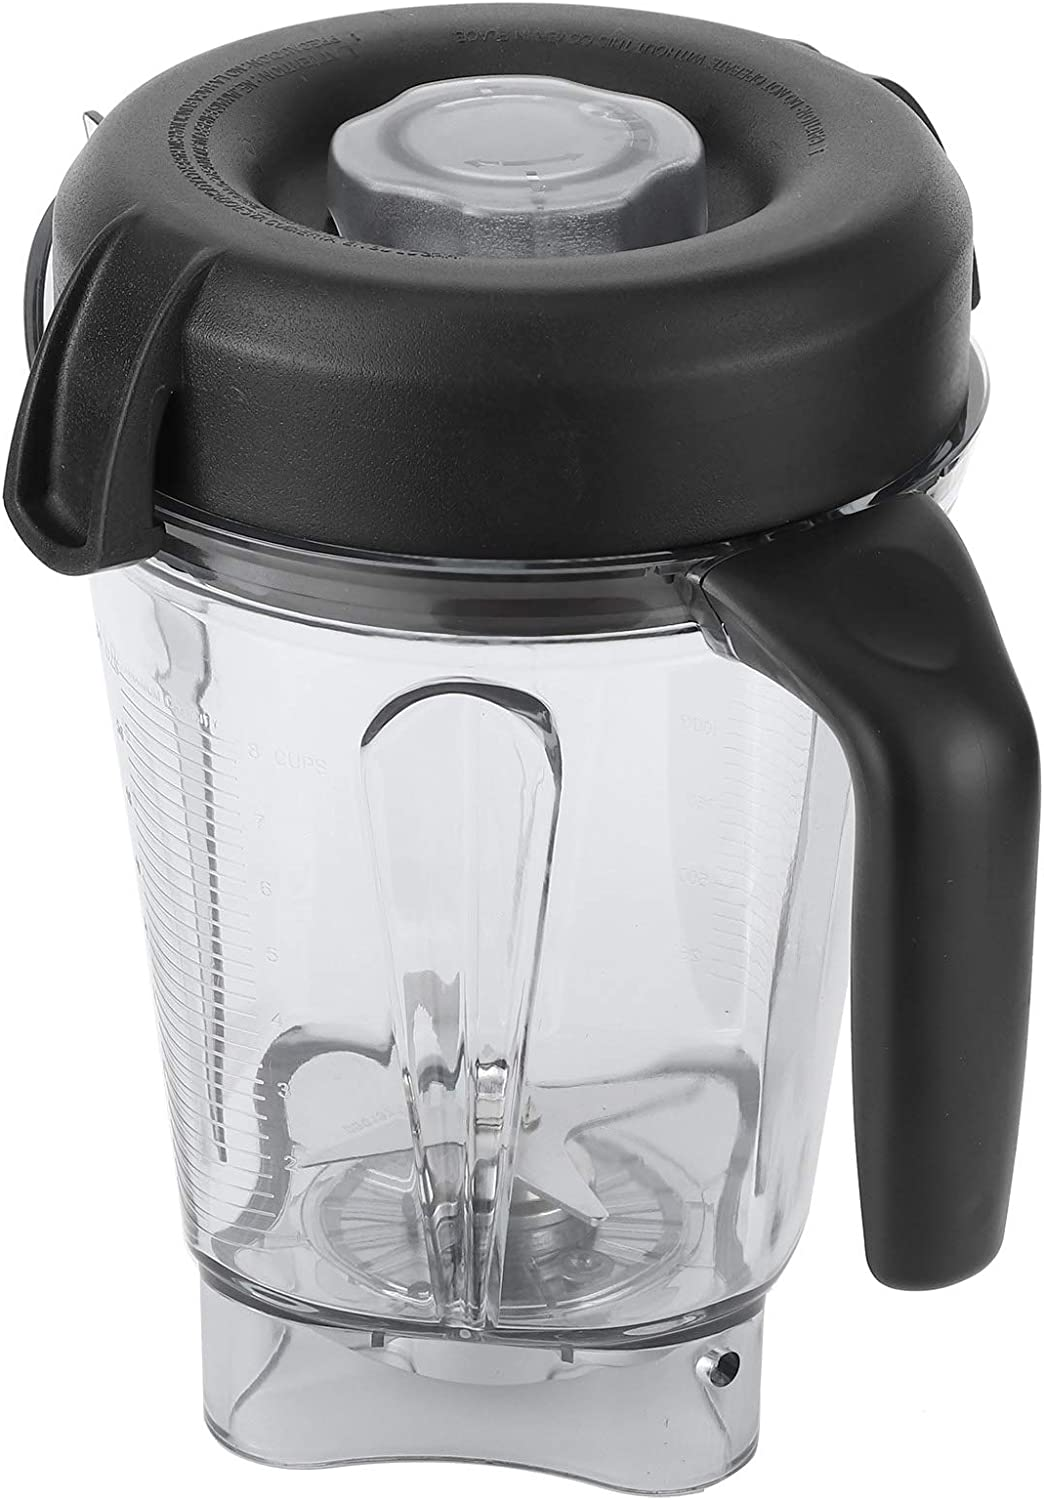 Blender Parts, Blender Accessories, Blender Cup, Safe for Vitamix G‑Series Machines Non-toxic